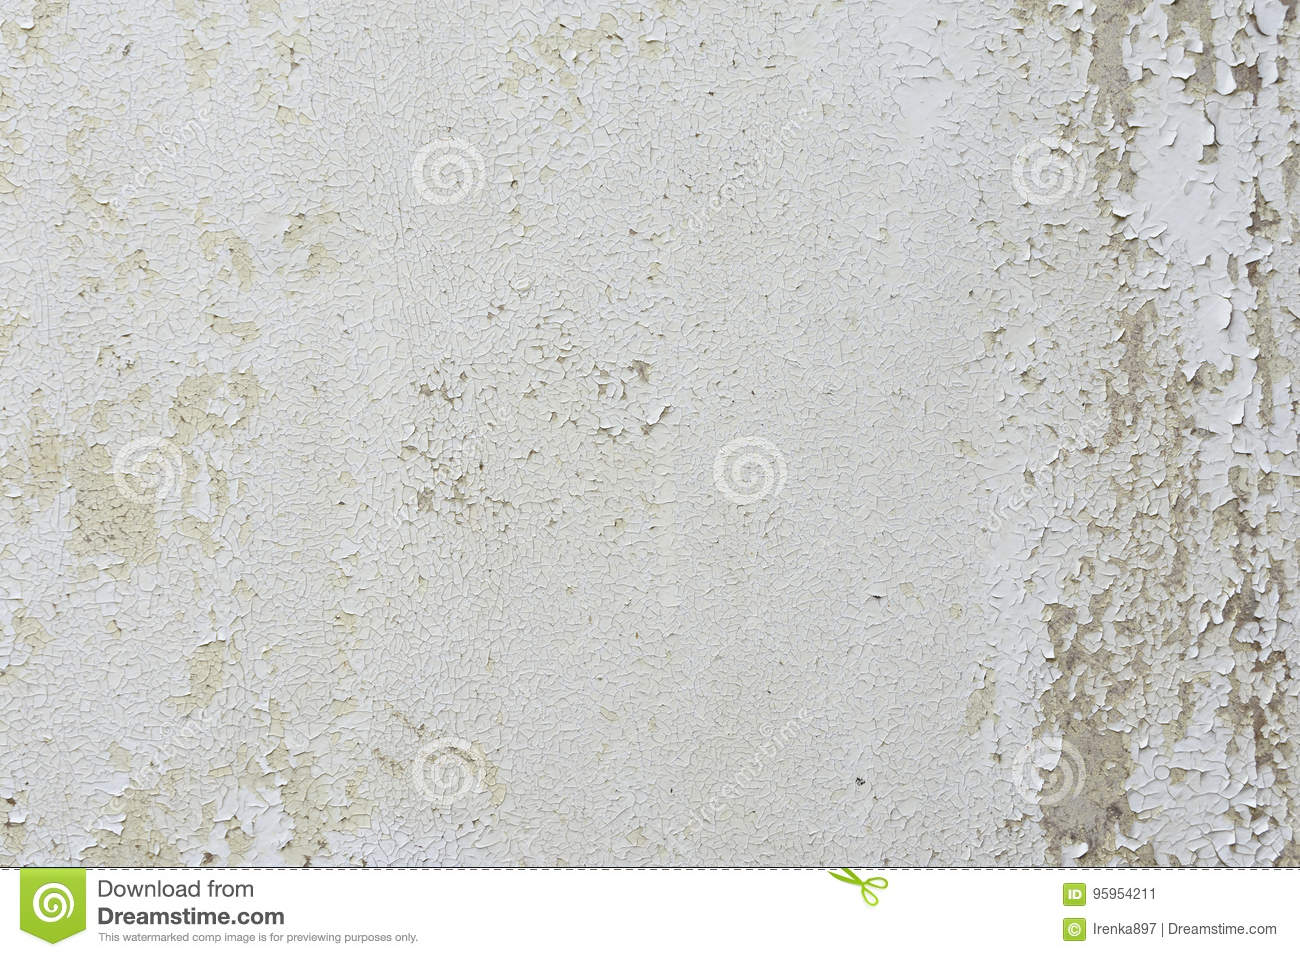 Flaking paint on a wall.